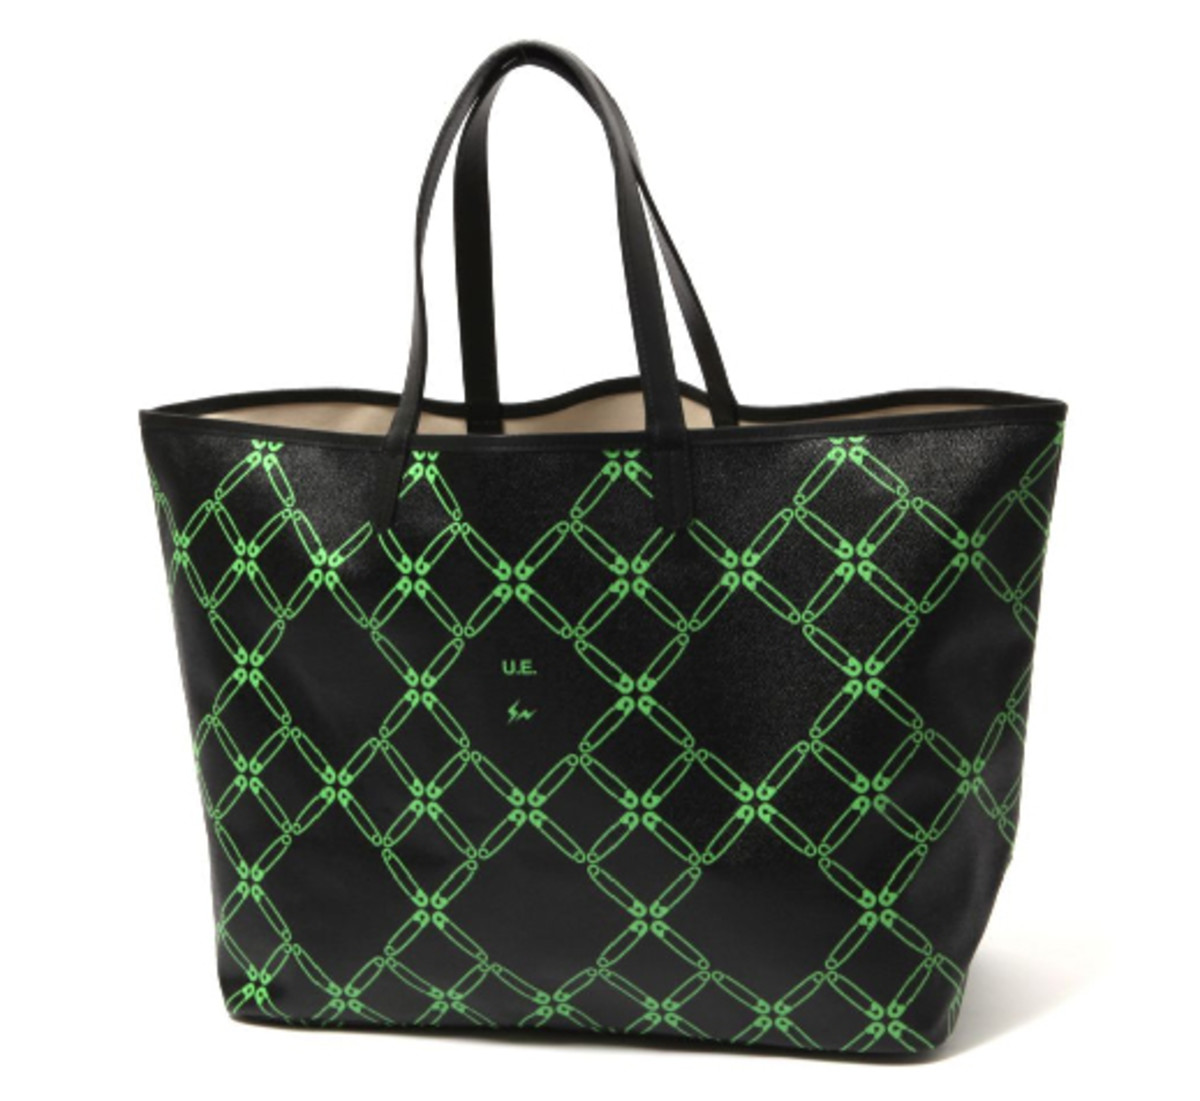 uniform-experiment-chain-link-tote-green